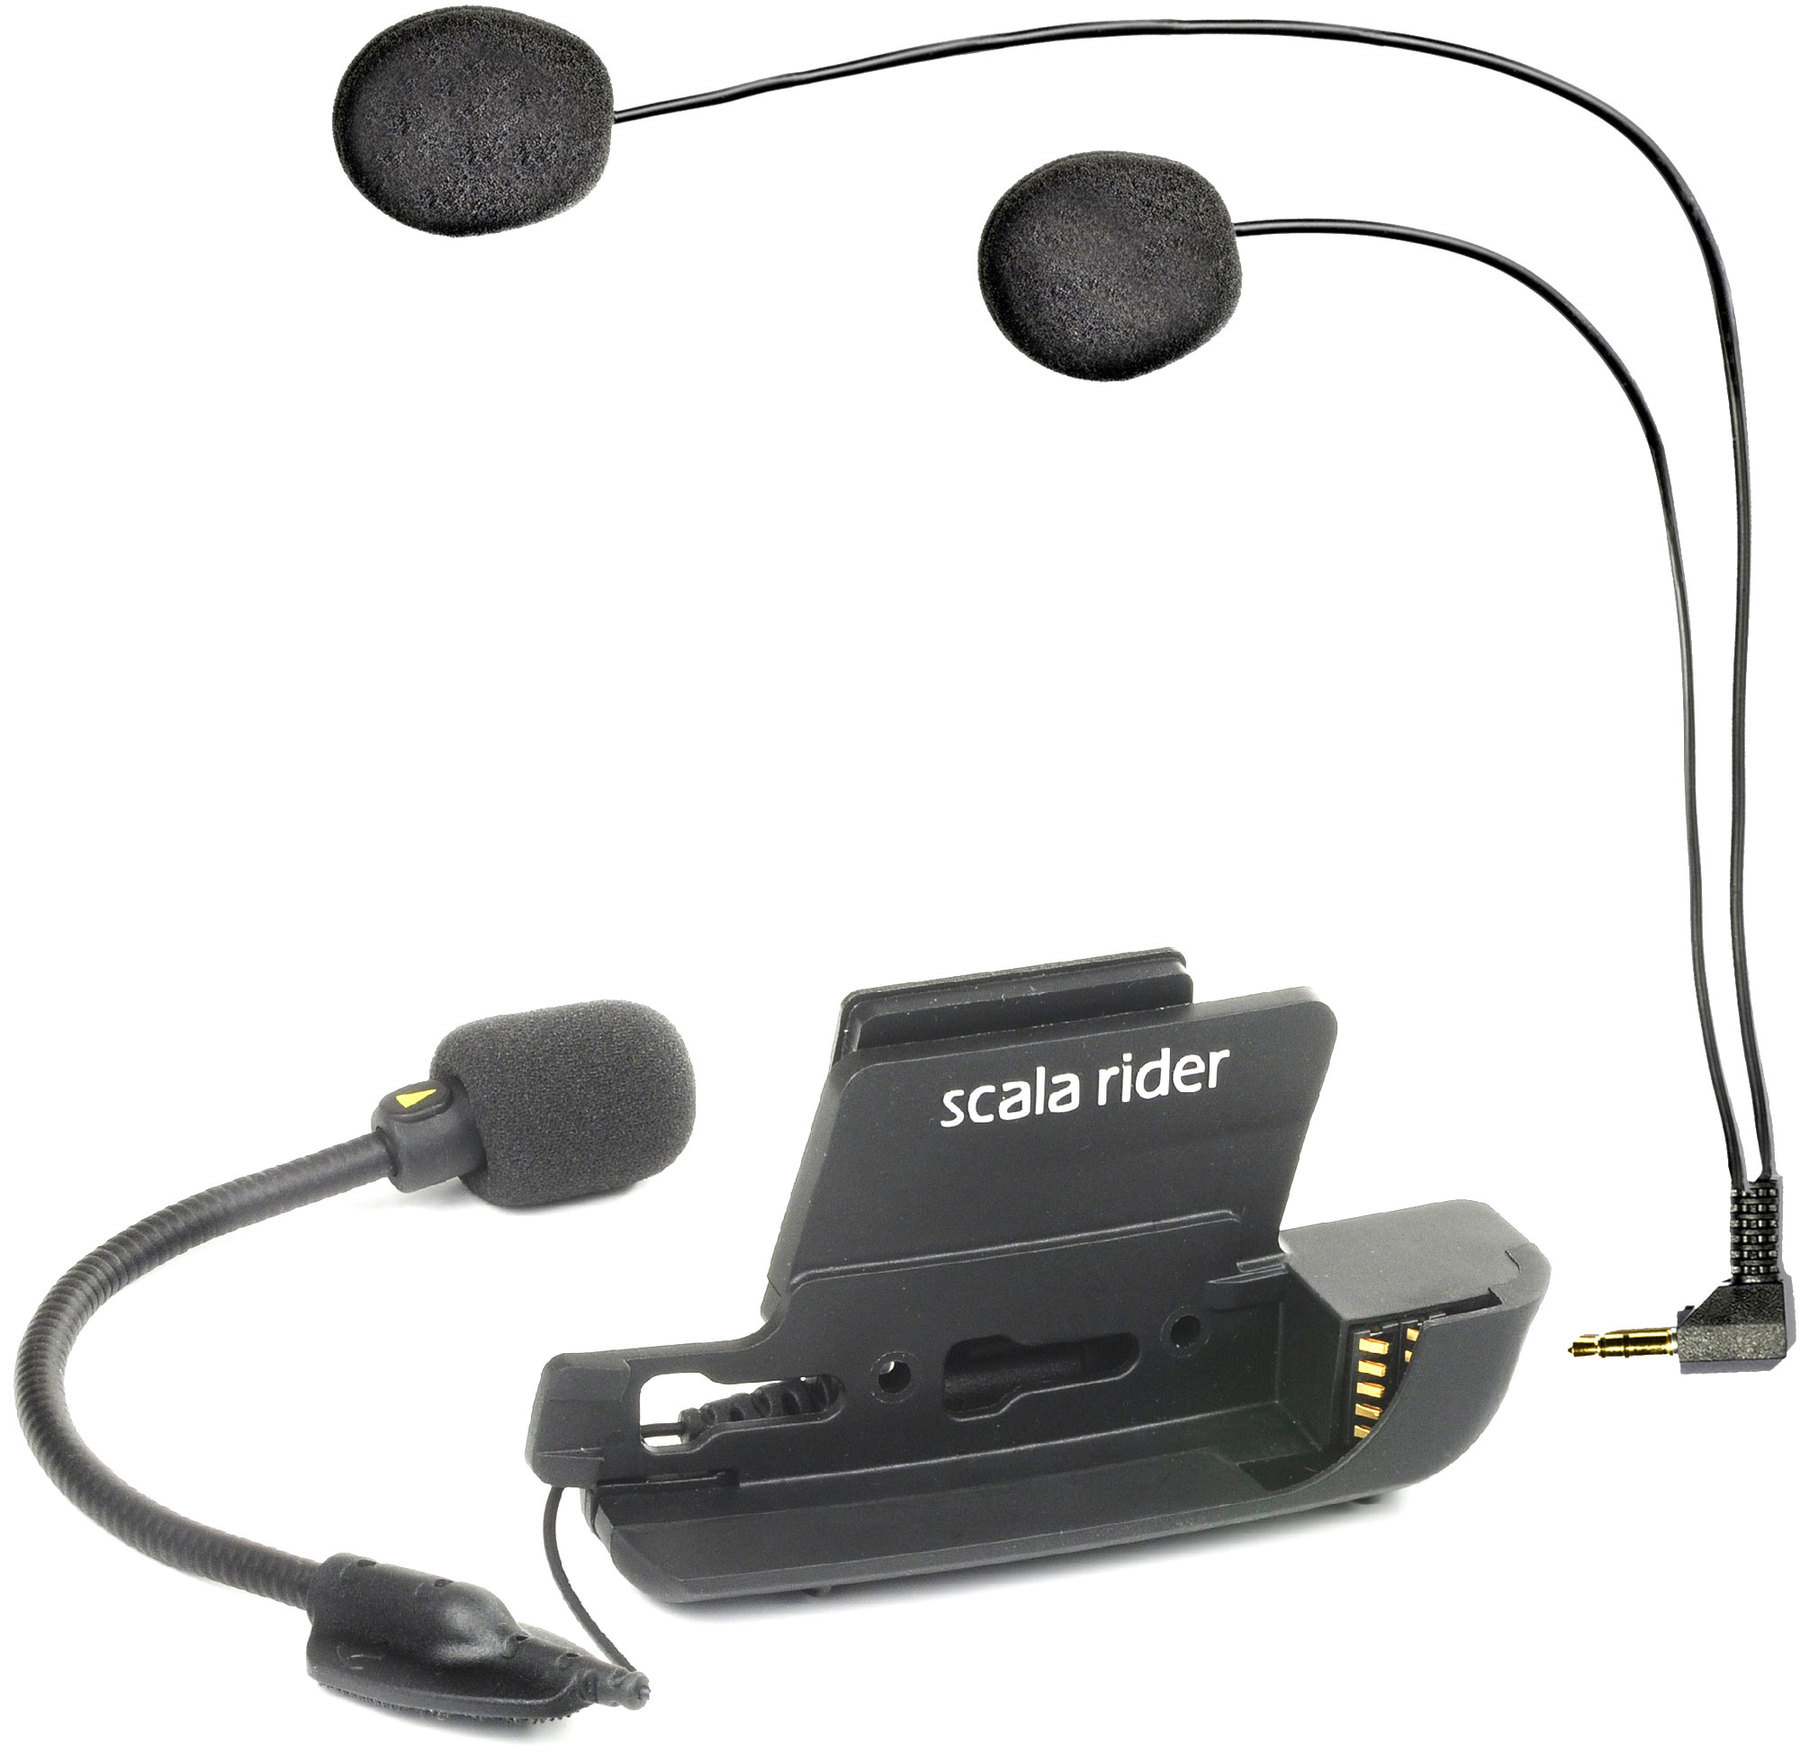 Buy Audiokit For Cardo G9 G9x Cable And Boom Microphone Louis Motorcycle Clothing And Technology